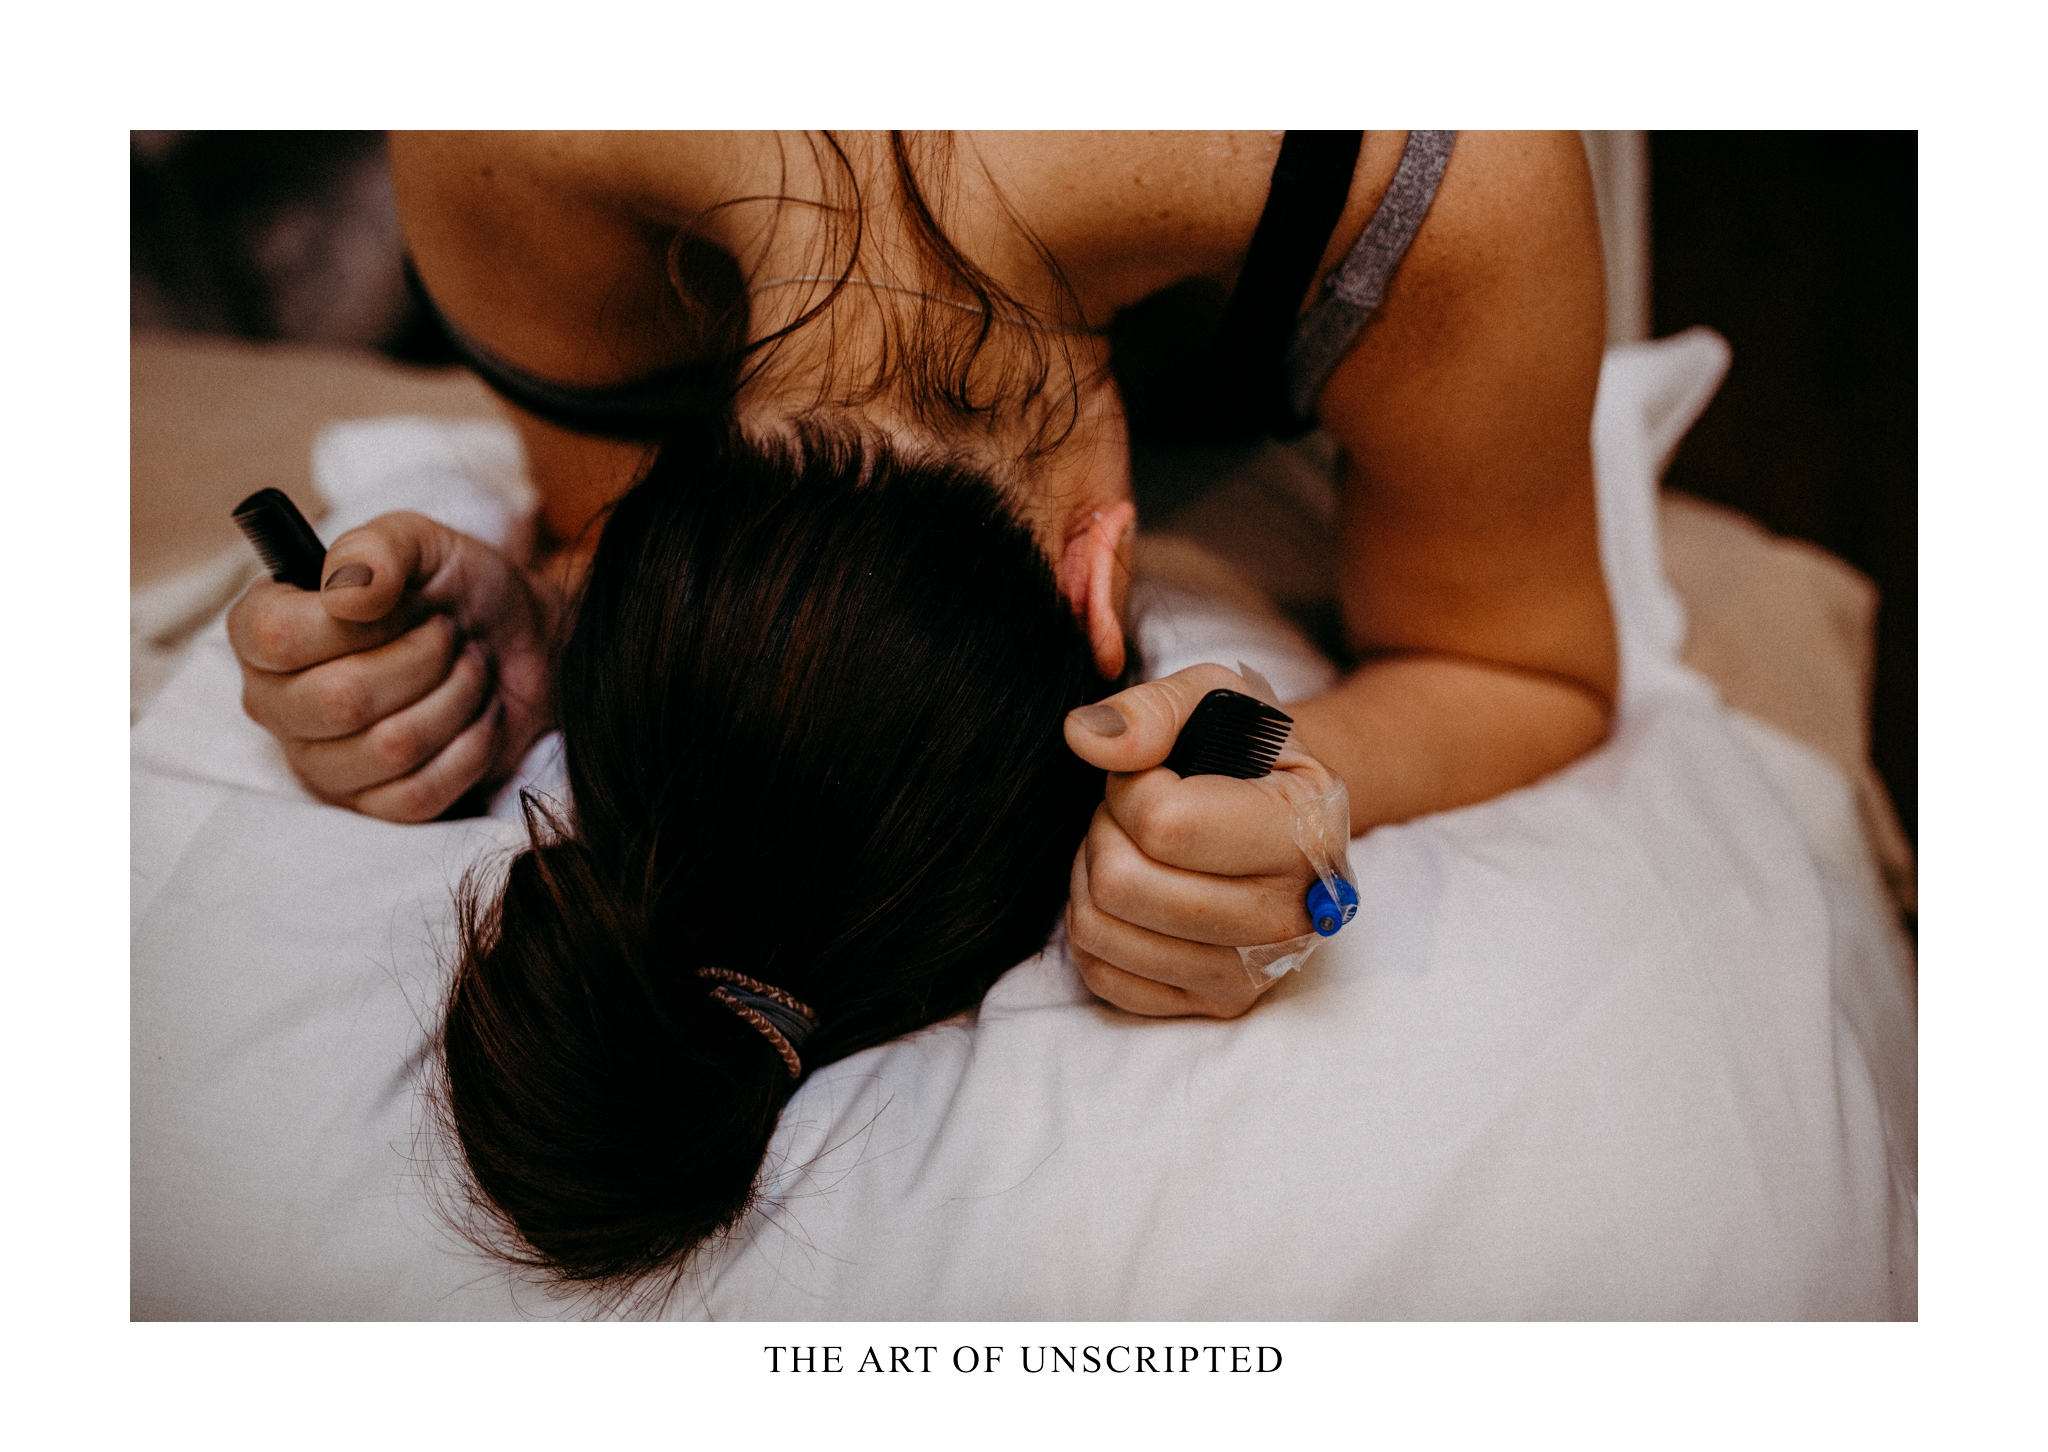 2017-06-10_221926__THE ART OF UNSCRIPTED_SPRINGFIELD MO_BIRTH PHOTOGRAPHER_ DOCUMENTARY_STORYTELLING_417_PHOTOGRAPHER